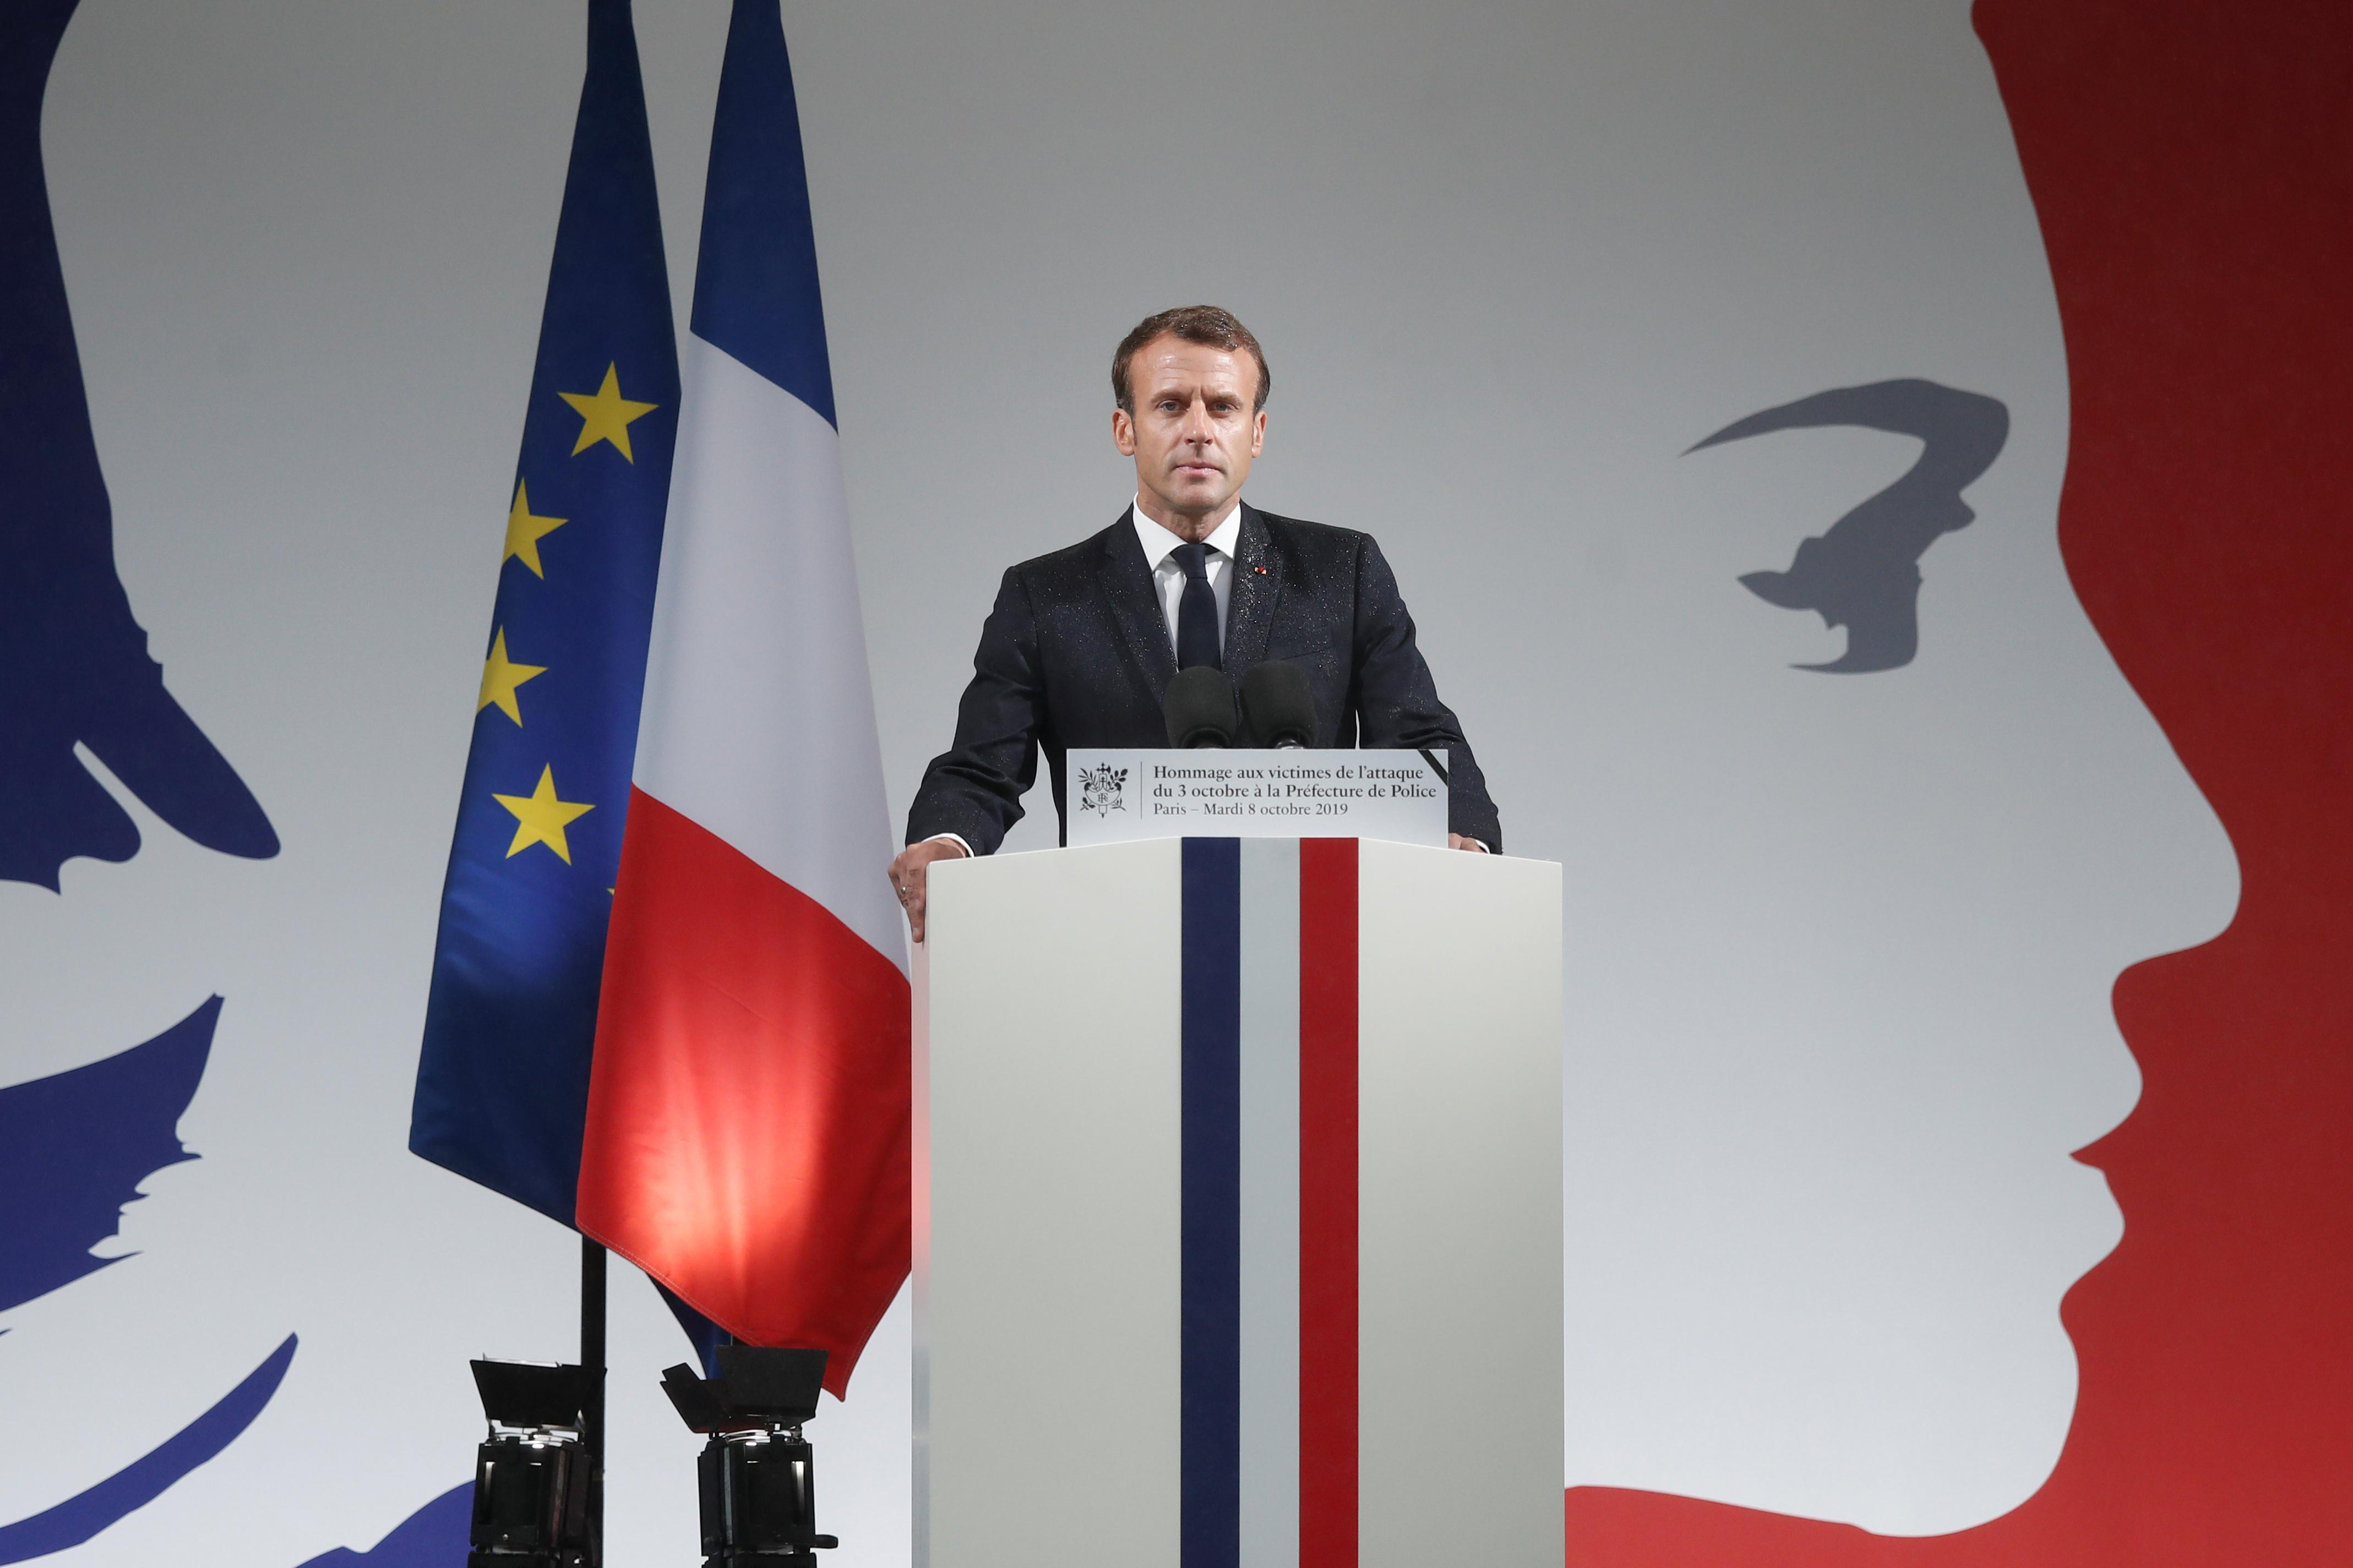 Hasil gambar untuk FILE PHOTO: French President Emmanuel Macron delivers a speech during a ceremony to honour three police officers and an administrative worker after they were killed by a 45-year-old suspected radicalised attacker last Thursday, at the Police Prefecture in Paris, France, October 8, 2019. REUTERS/Benoit Tessier